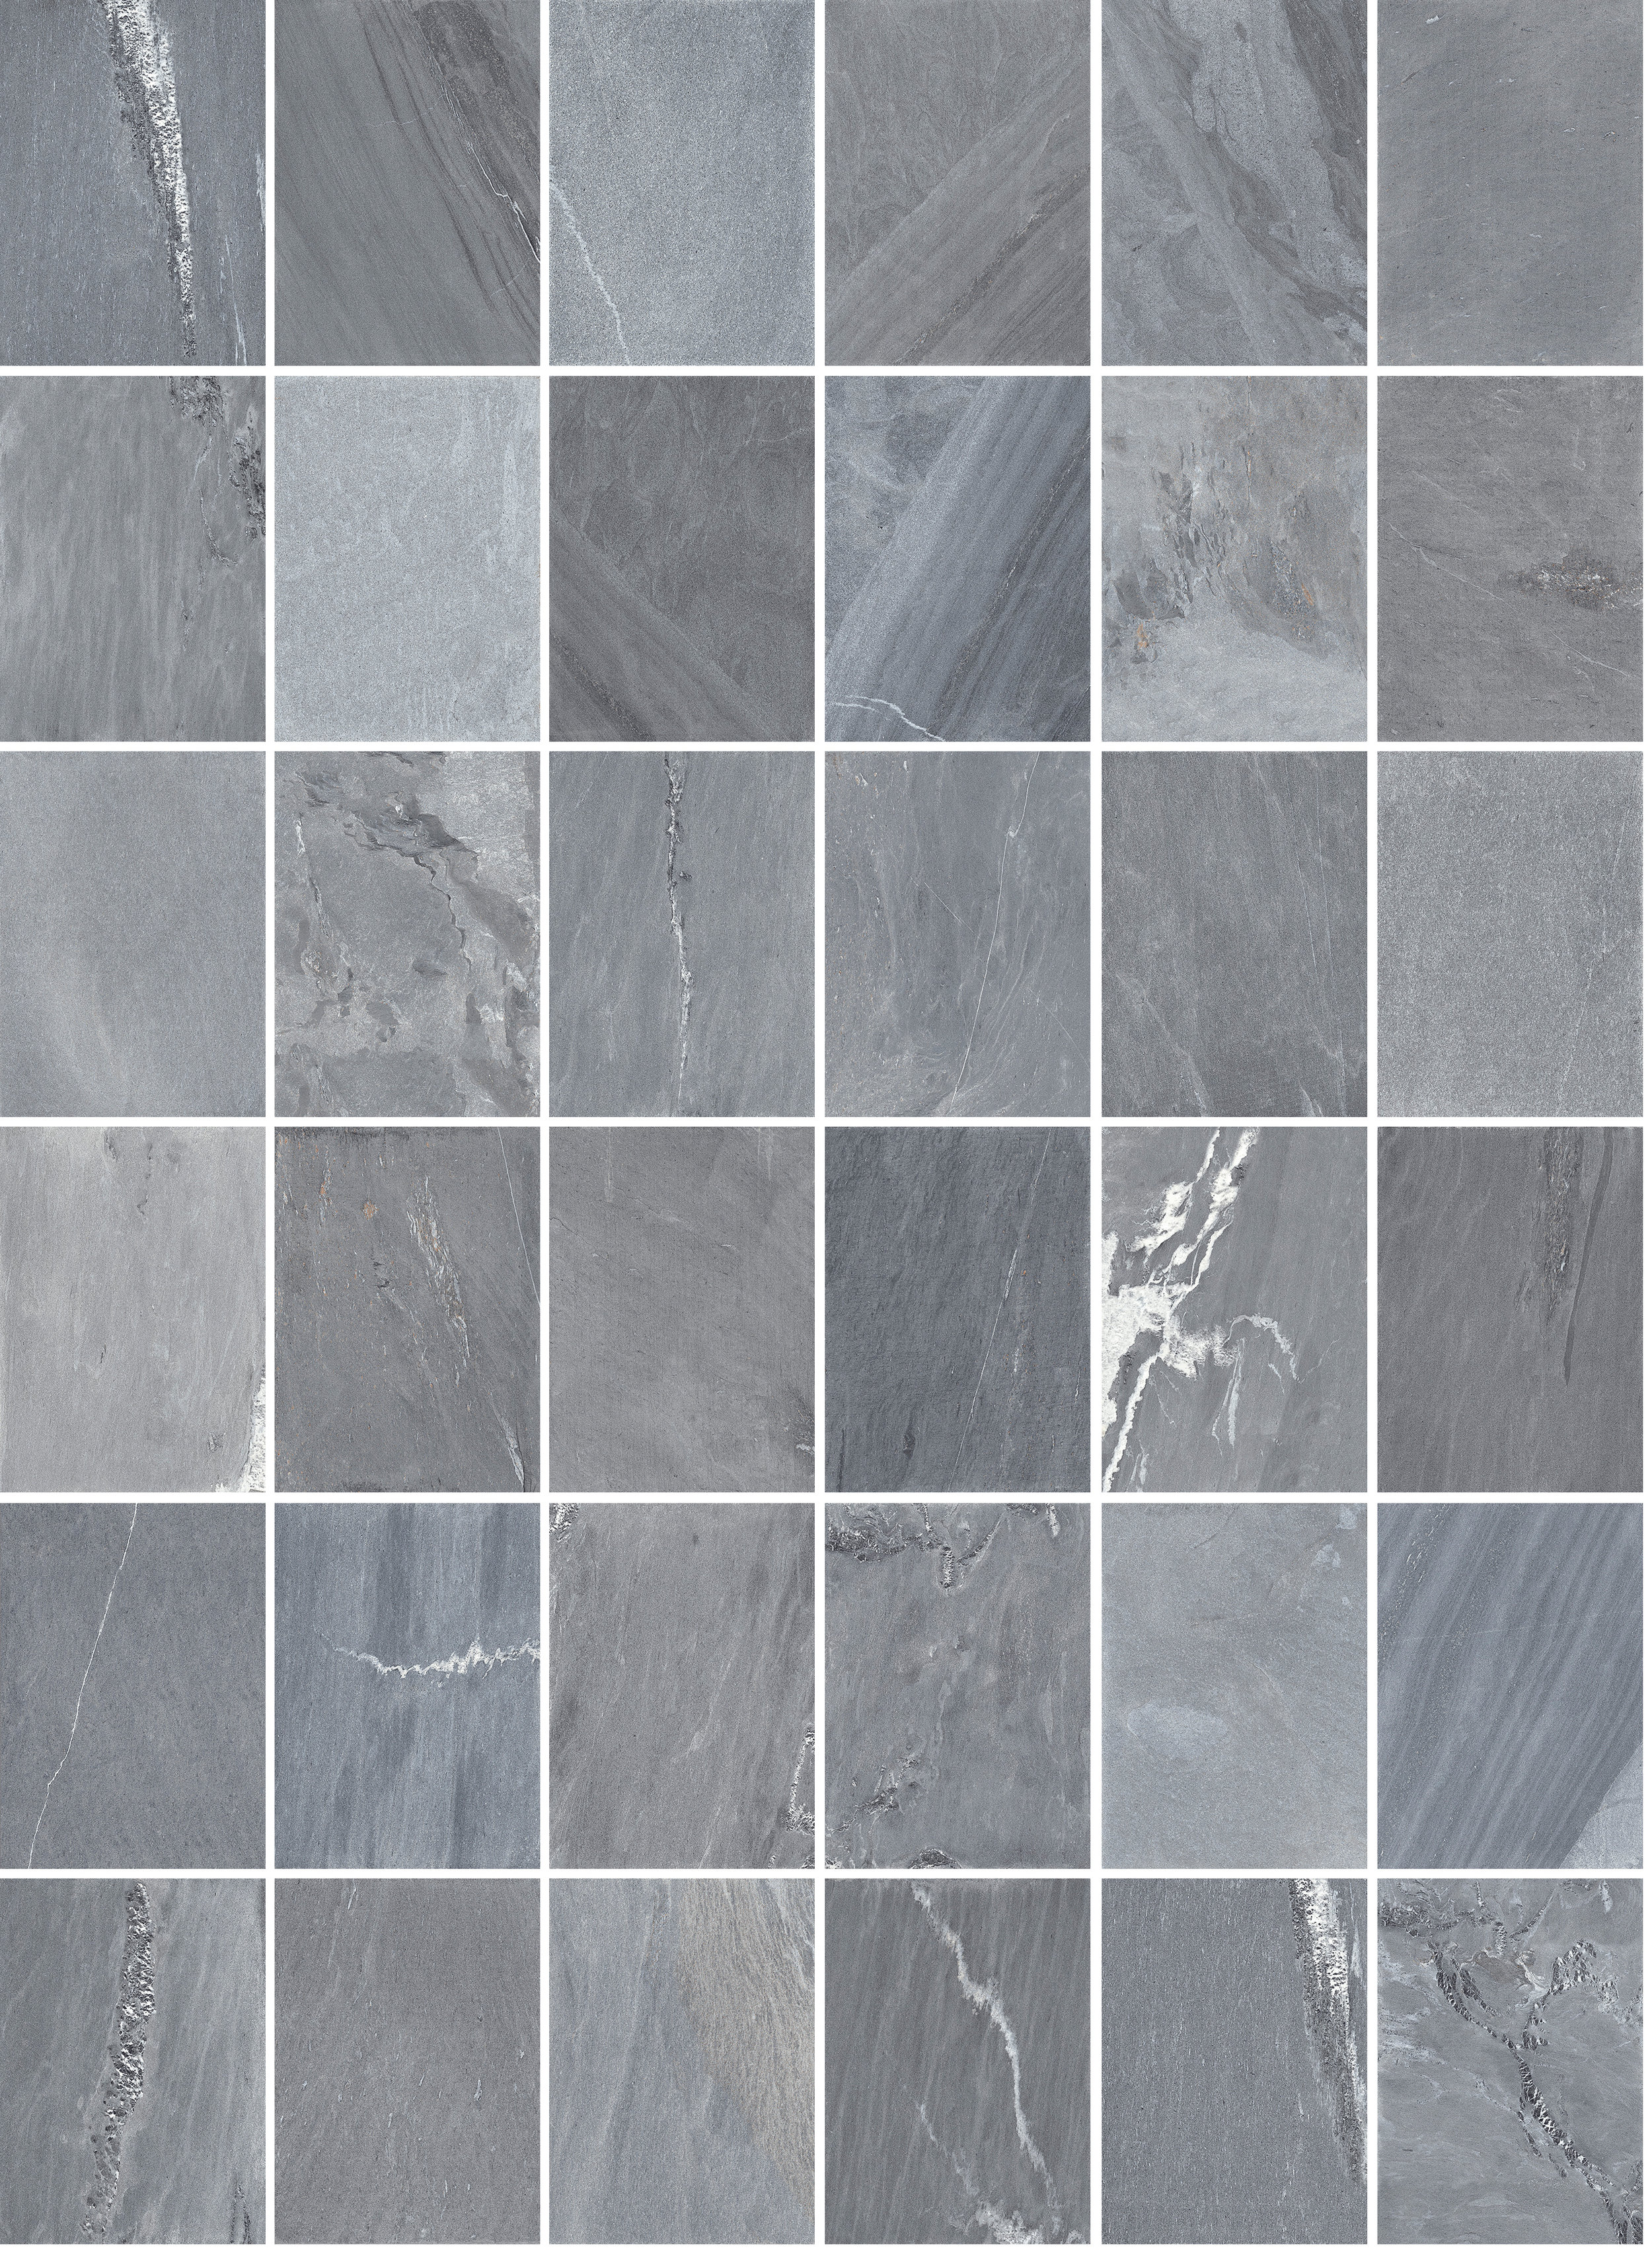 Featuring 36 different faces replicating the beauty and variation of natural stone. (Grigio Scuro shown)